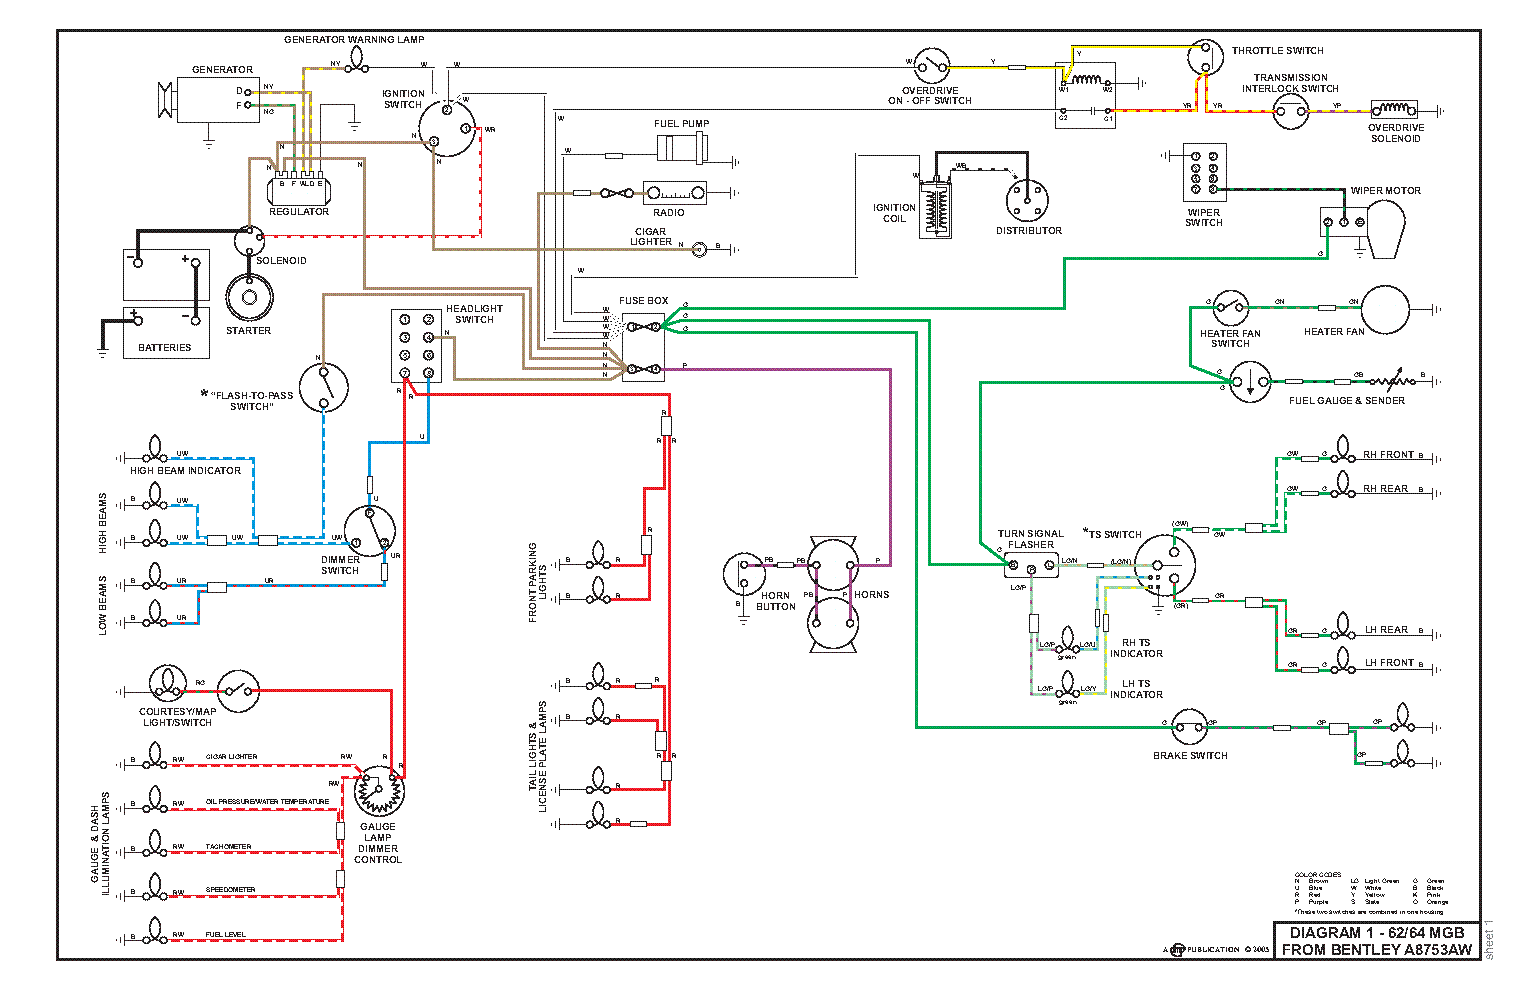 bentley_mg_b_car_wiring_diagrams.pdf_1 elektrotanya com previews 45612216 autohack bentle how to read automotive wiring diagrams pdf at n-0.co